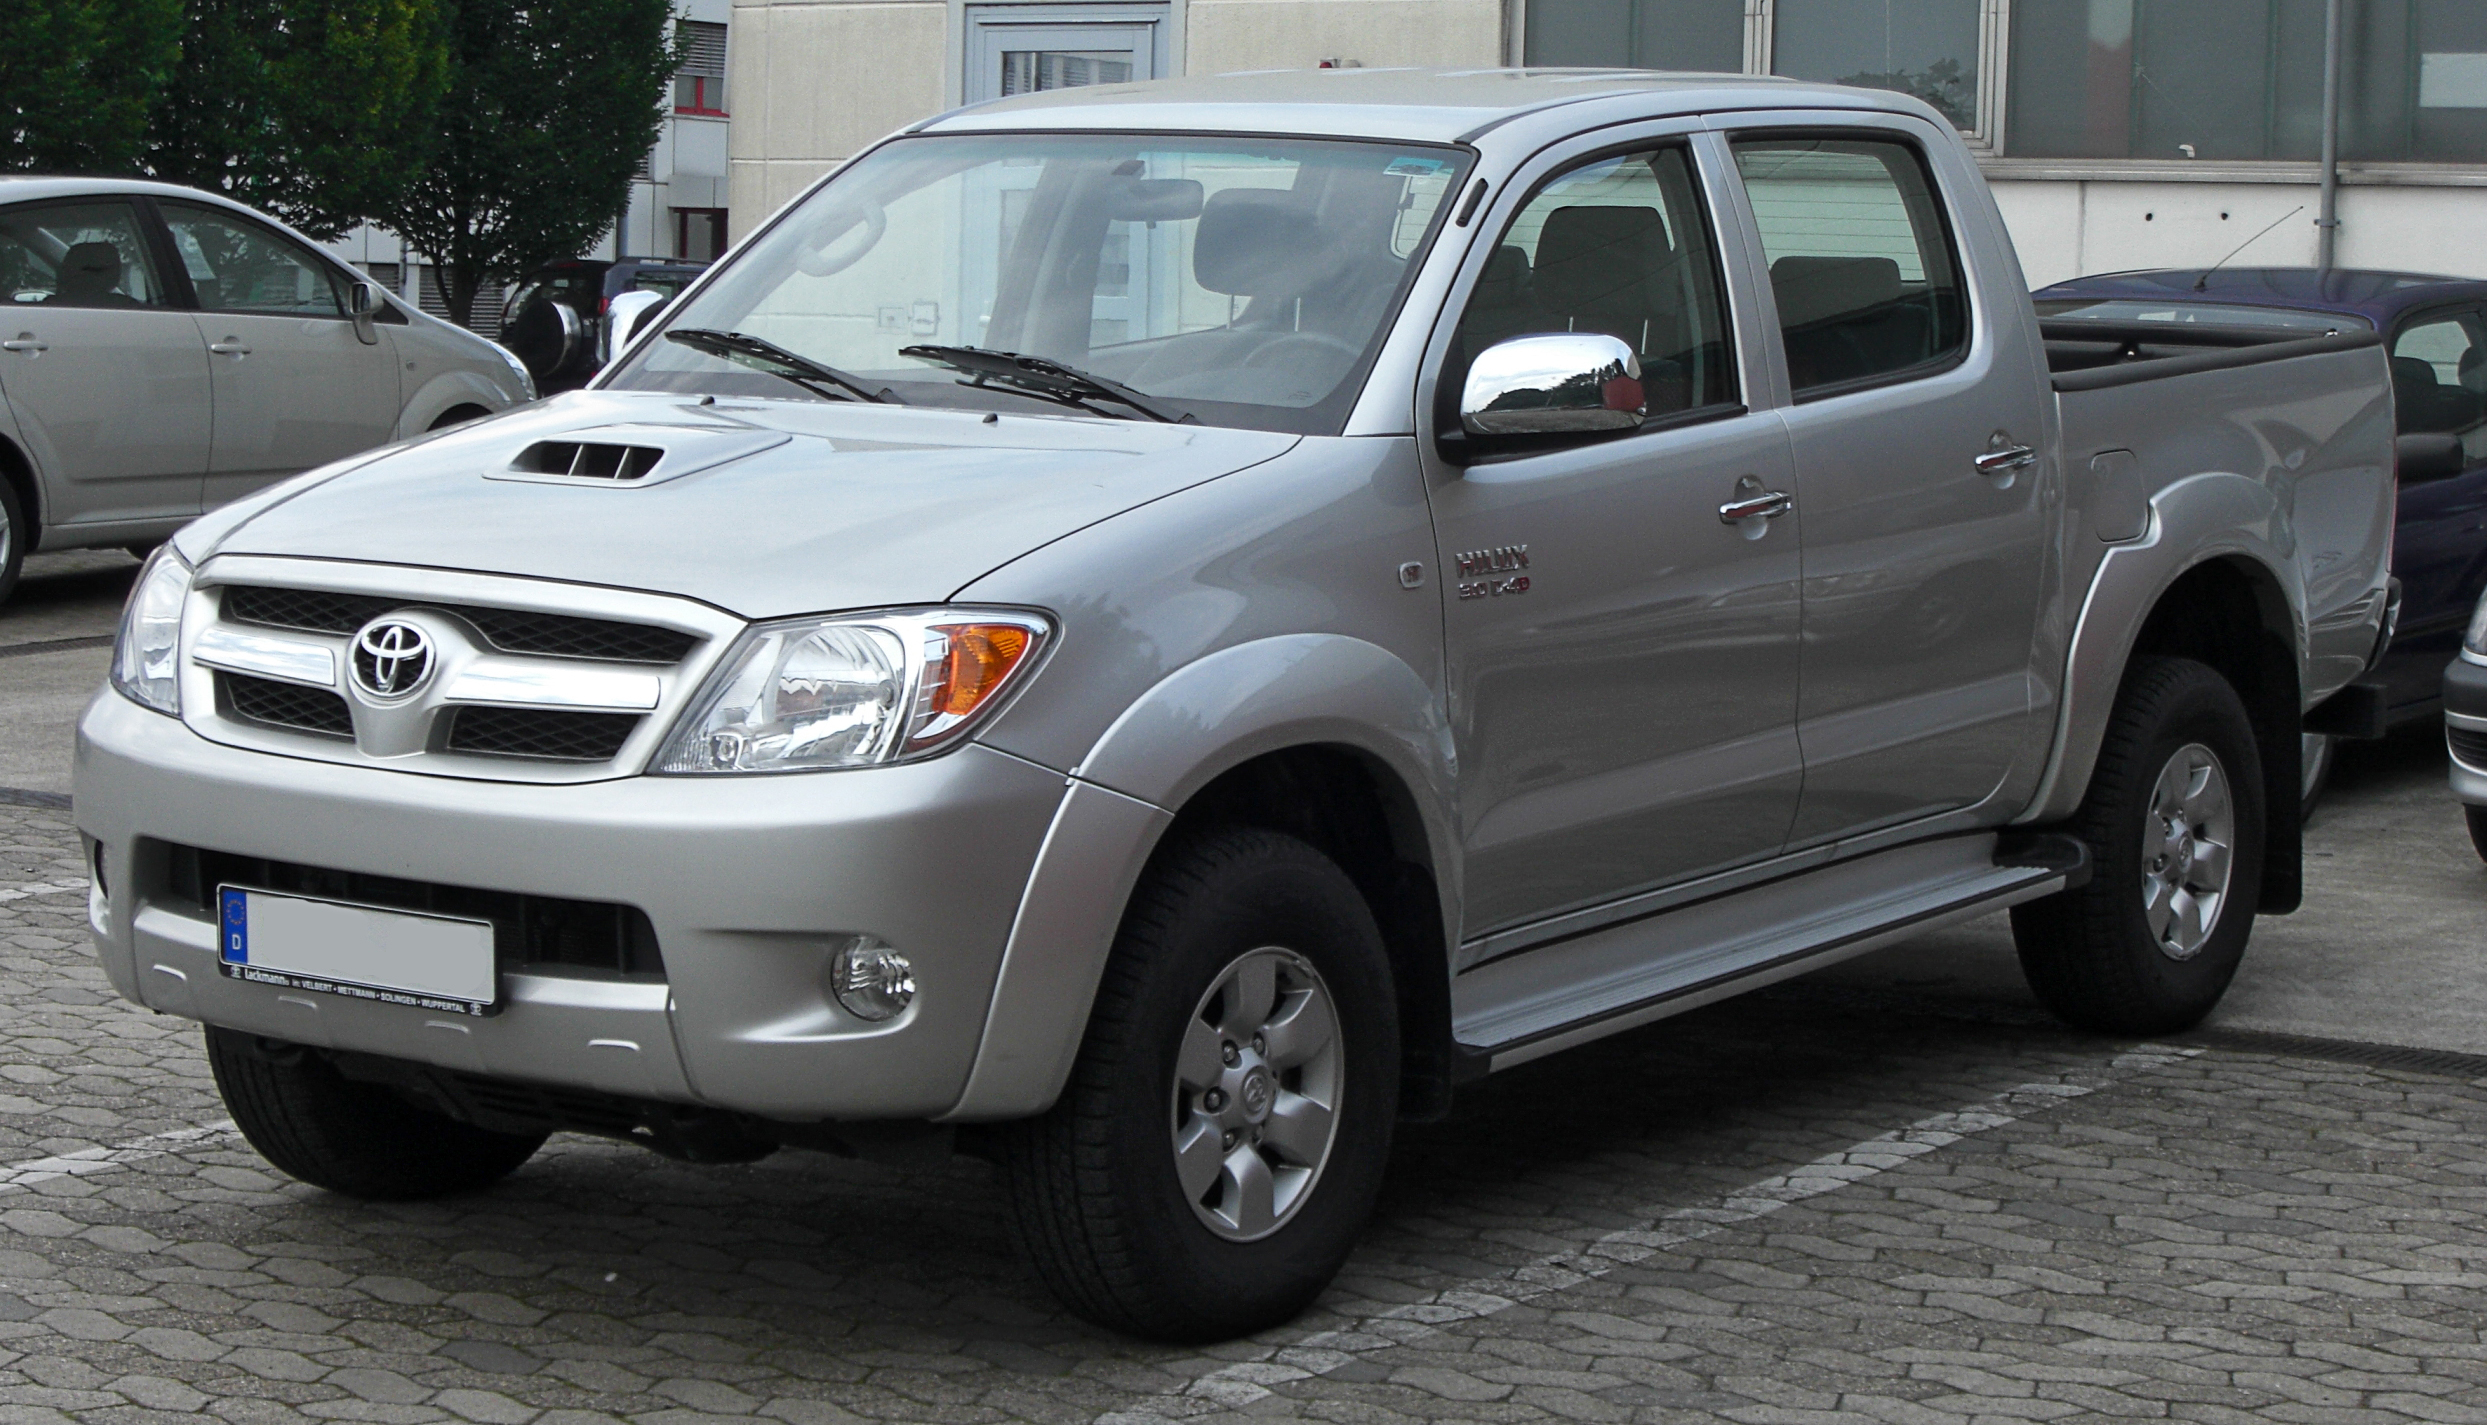 Toyota Hilux Surf 2003 photo - 2